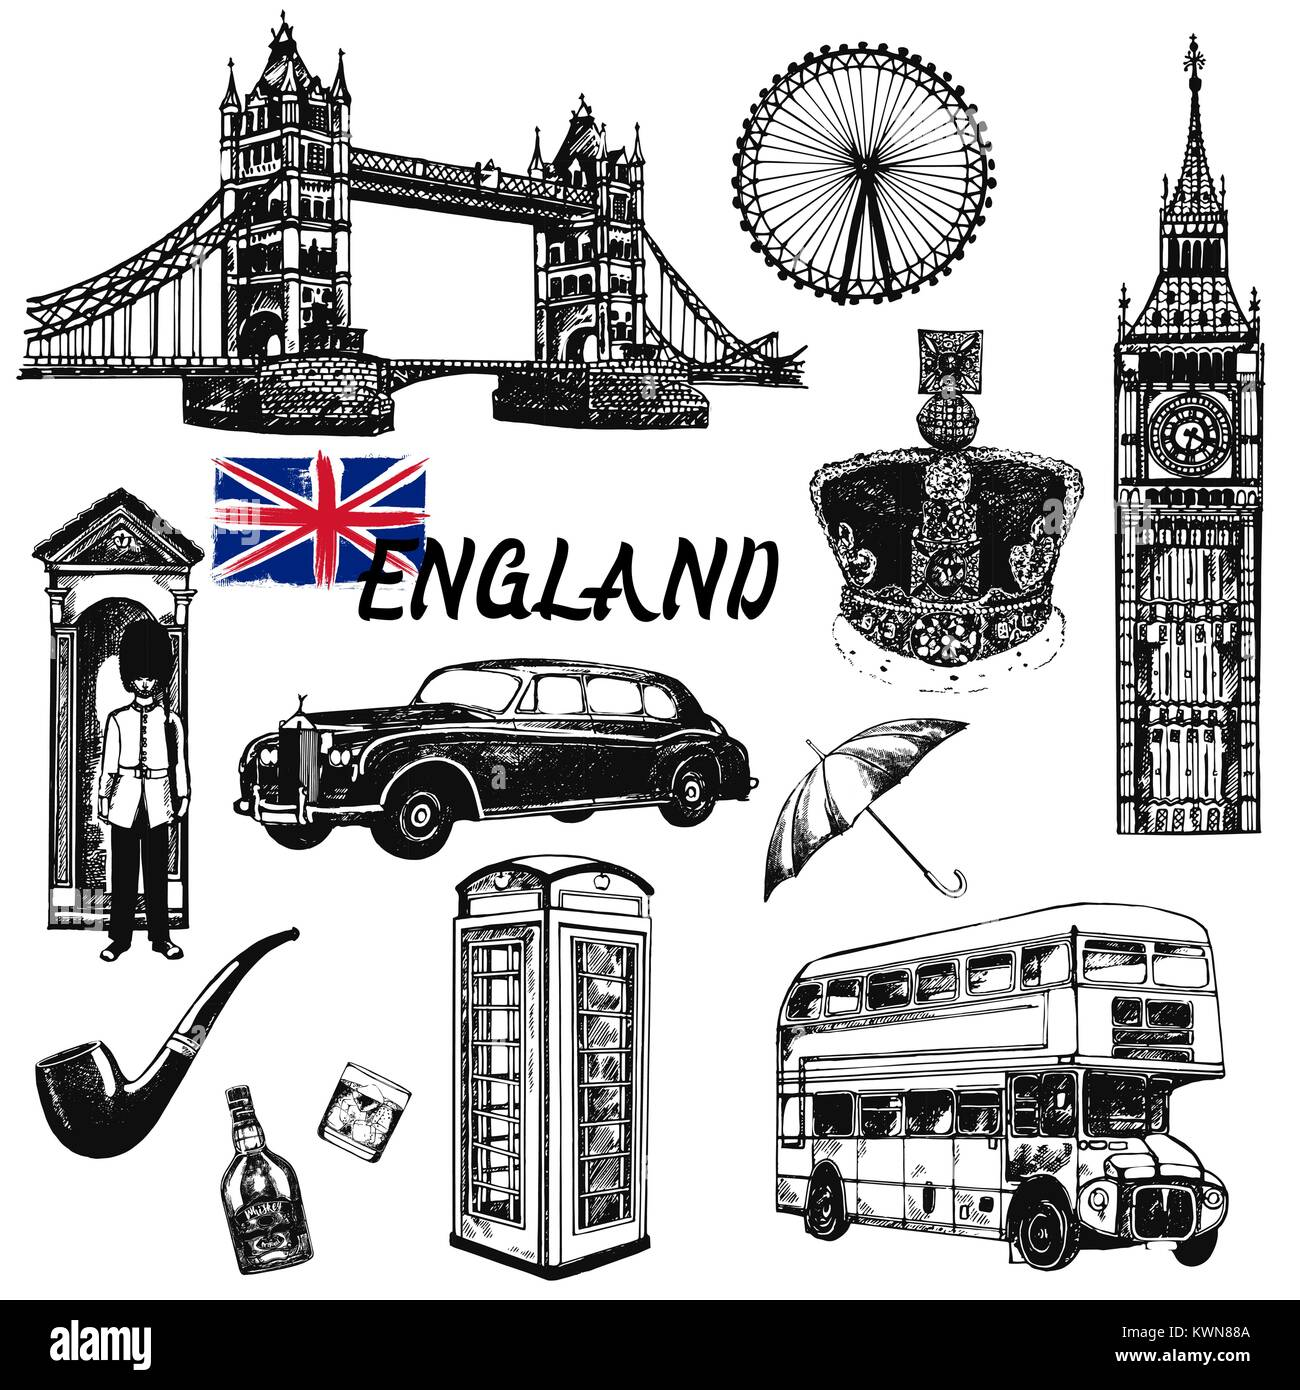 Set of hand drawn sketch style England themed objects. Vector illustration isolated on white background. - Stock Image